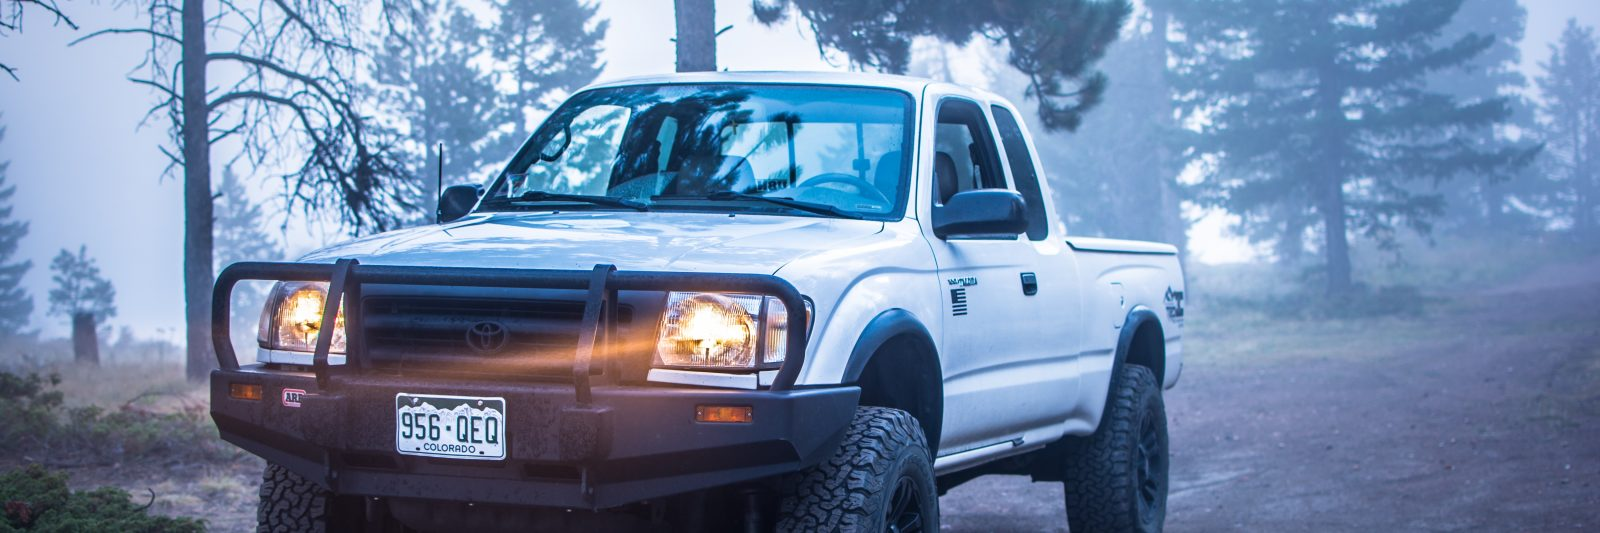 What to Look for in a Dealership When Buying a Truck